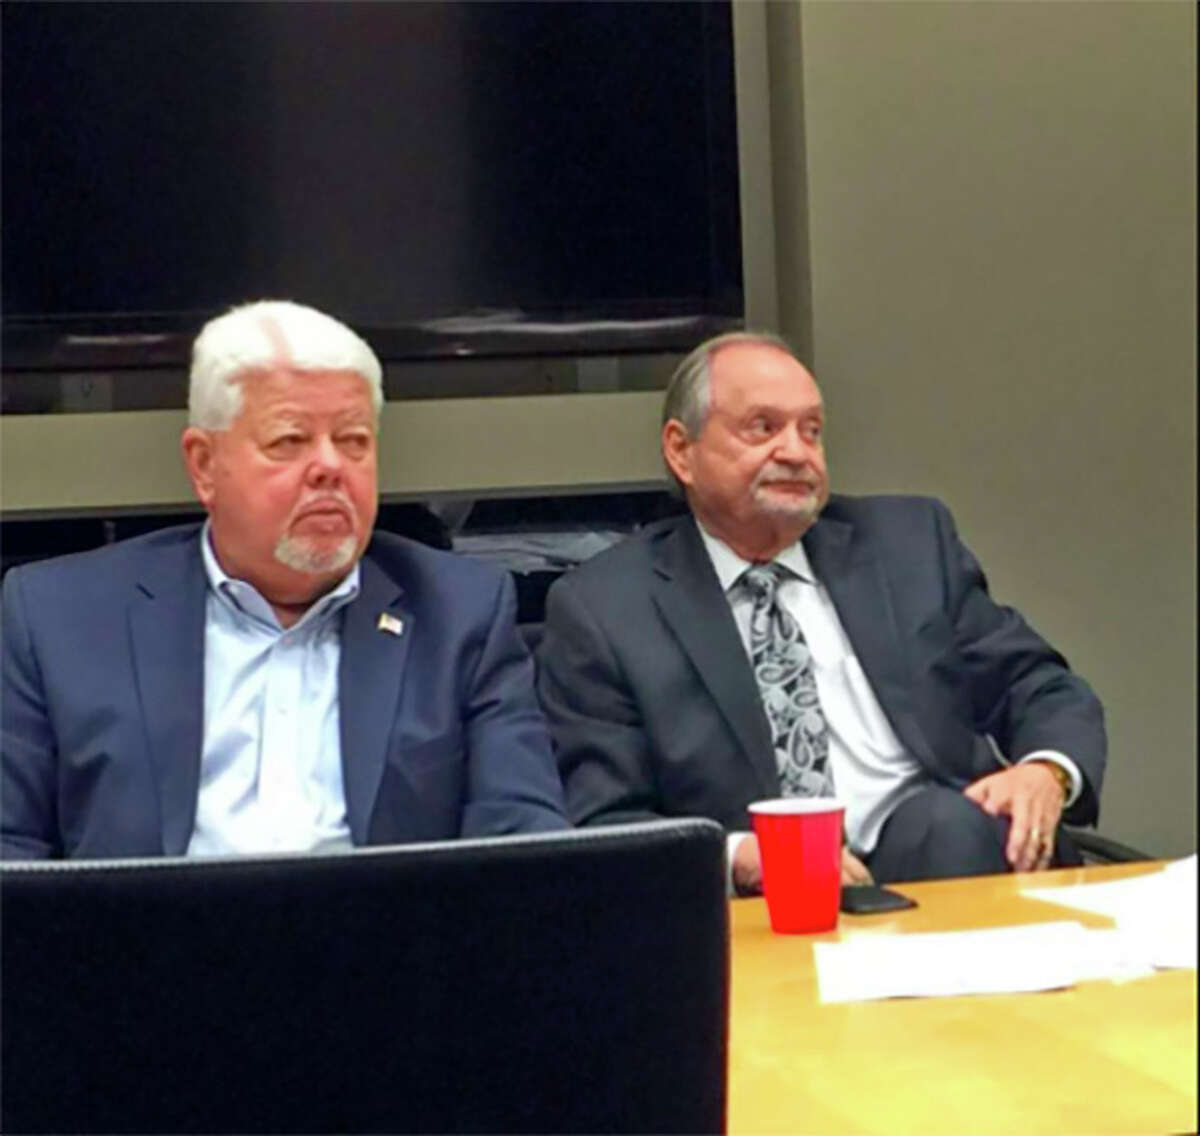 The terms have expired for all members of Pasadena's economic development corporation, including chairman Roy Mease, left, and Brad Hance. That has led to a halt on all projects by the group, known as the Pasadena Second Century Corp.